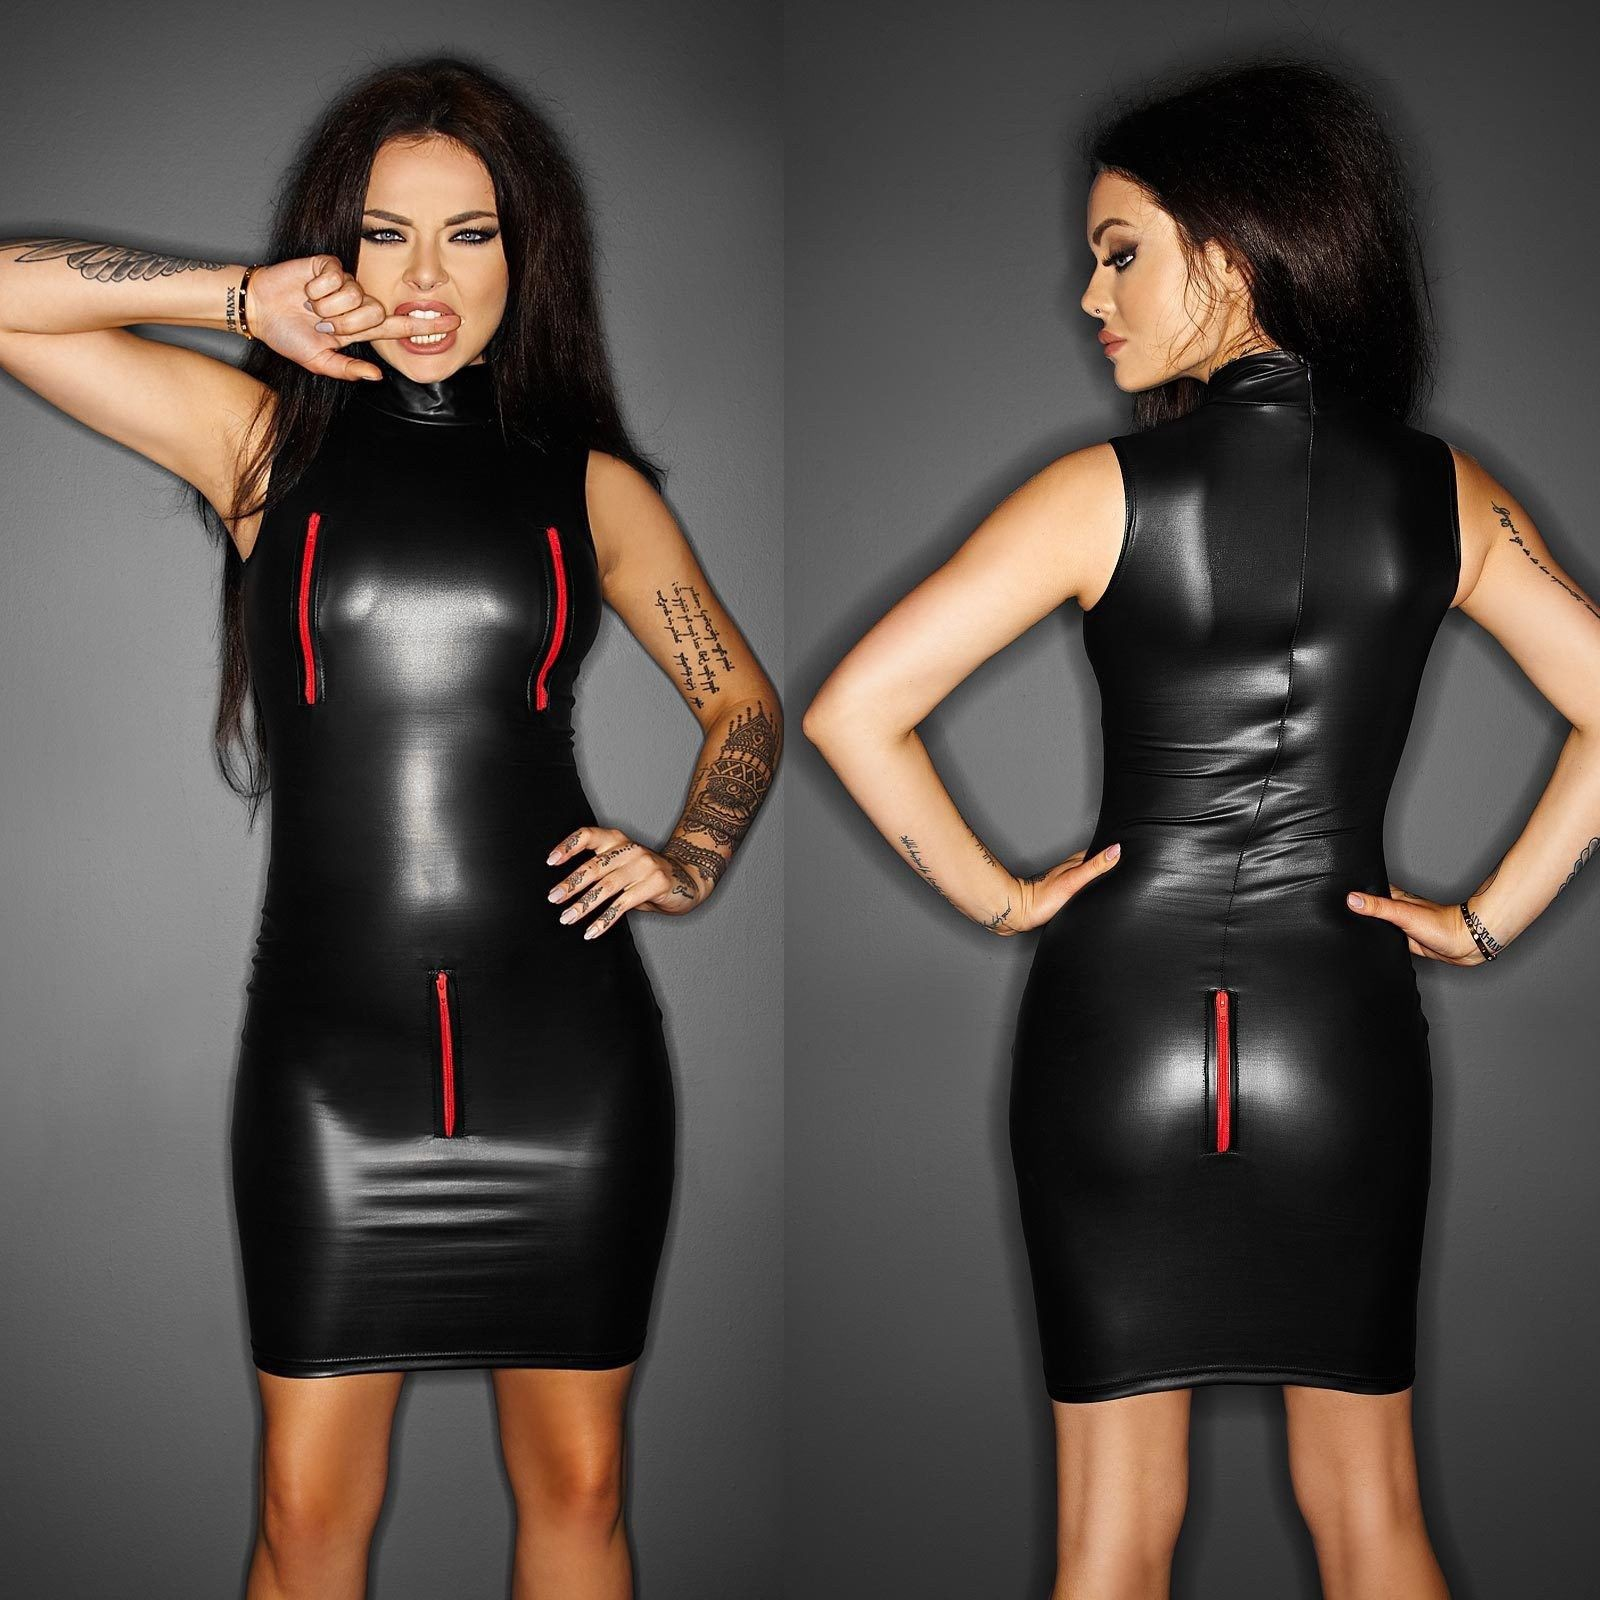 NOIR HANDMADE Shameless Dress Wetlook Kleid GOTHIC KLEID CLUBWEAR ...